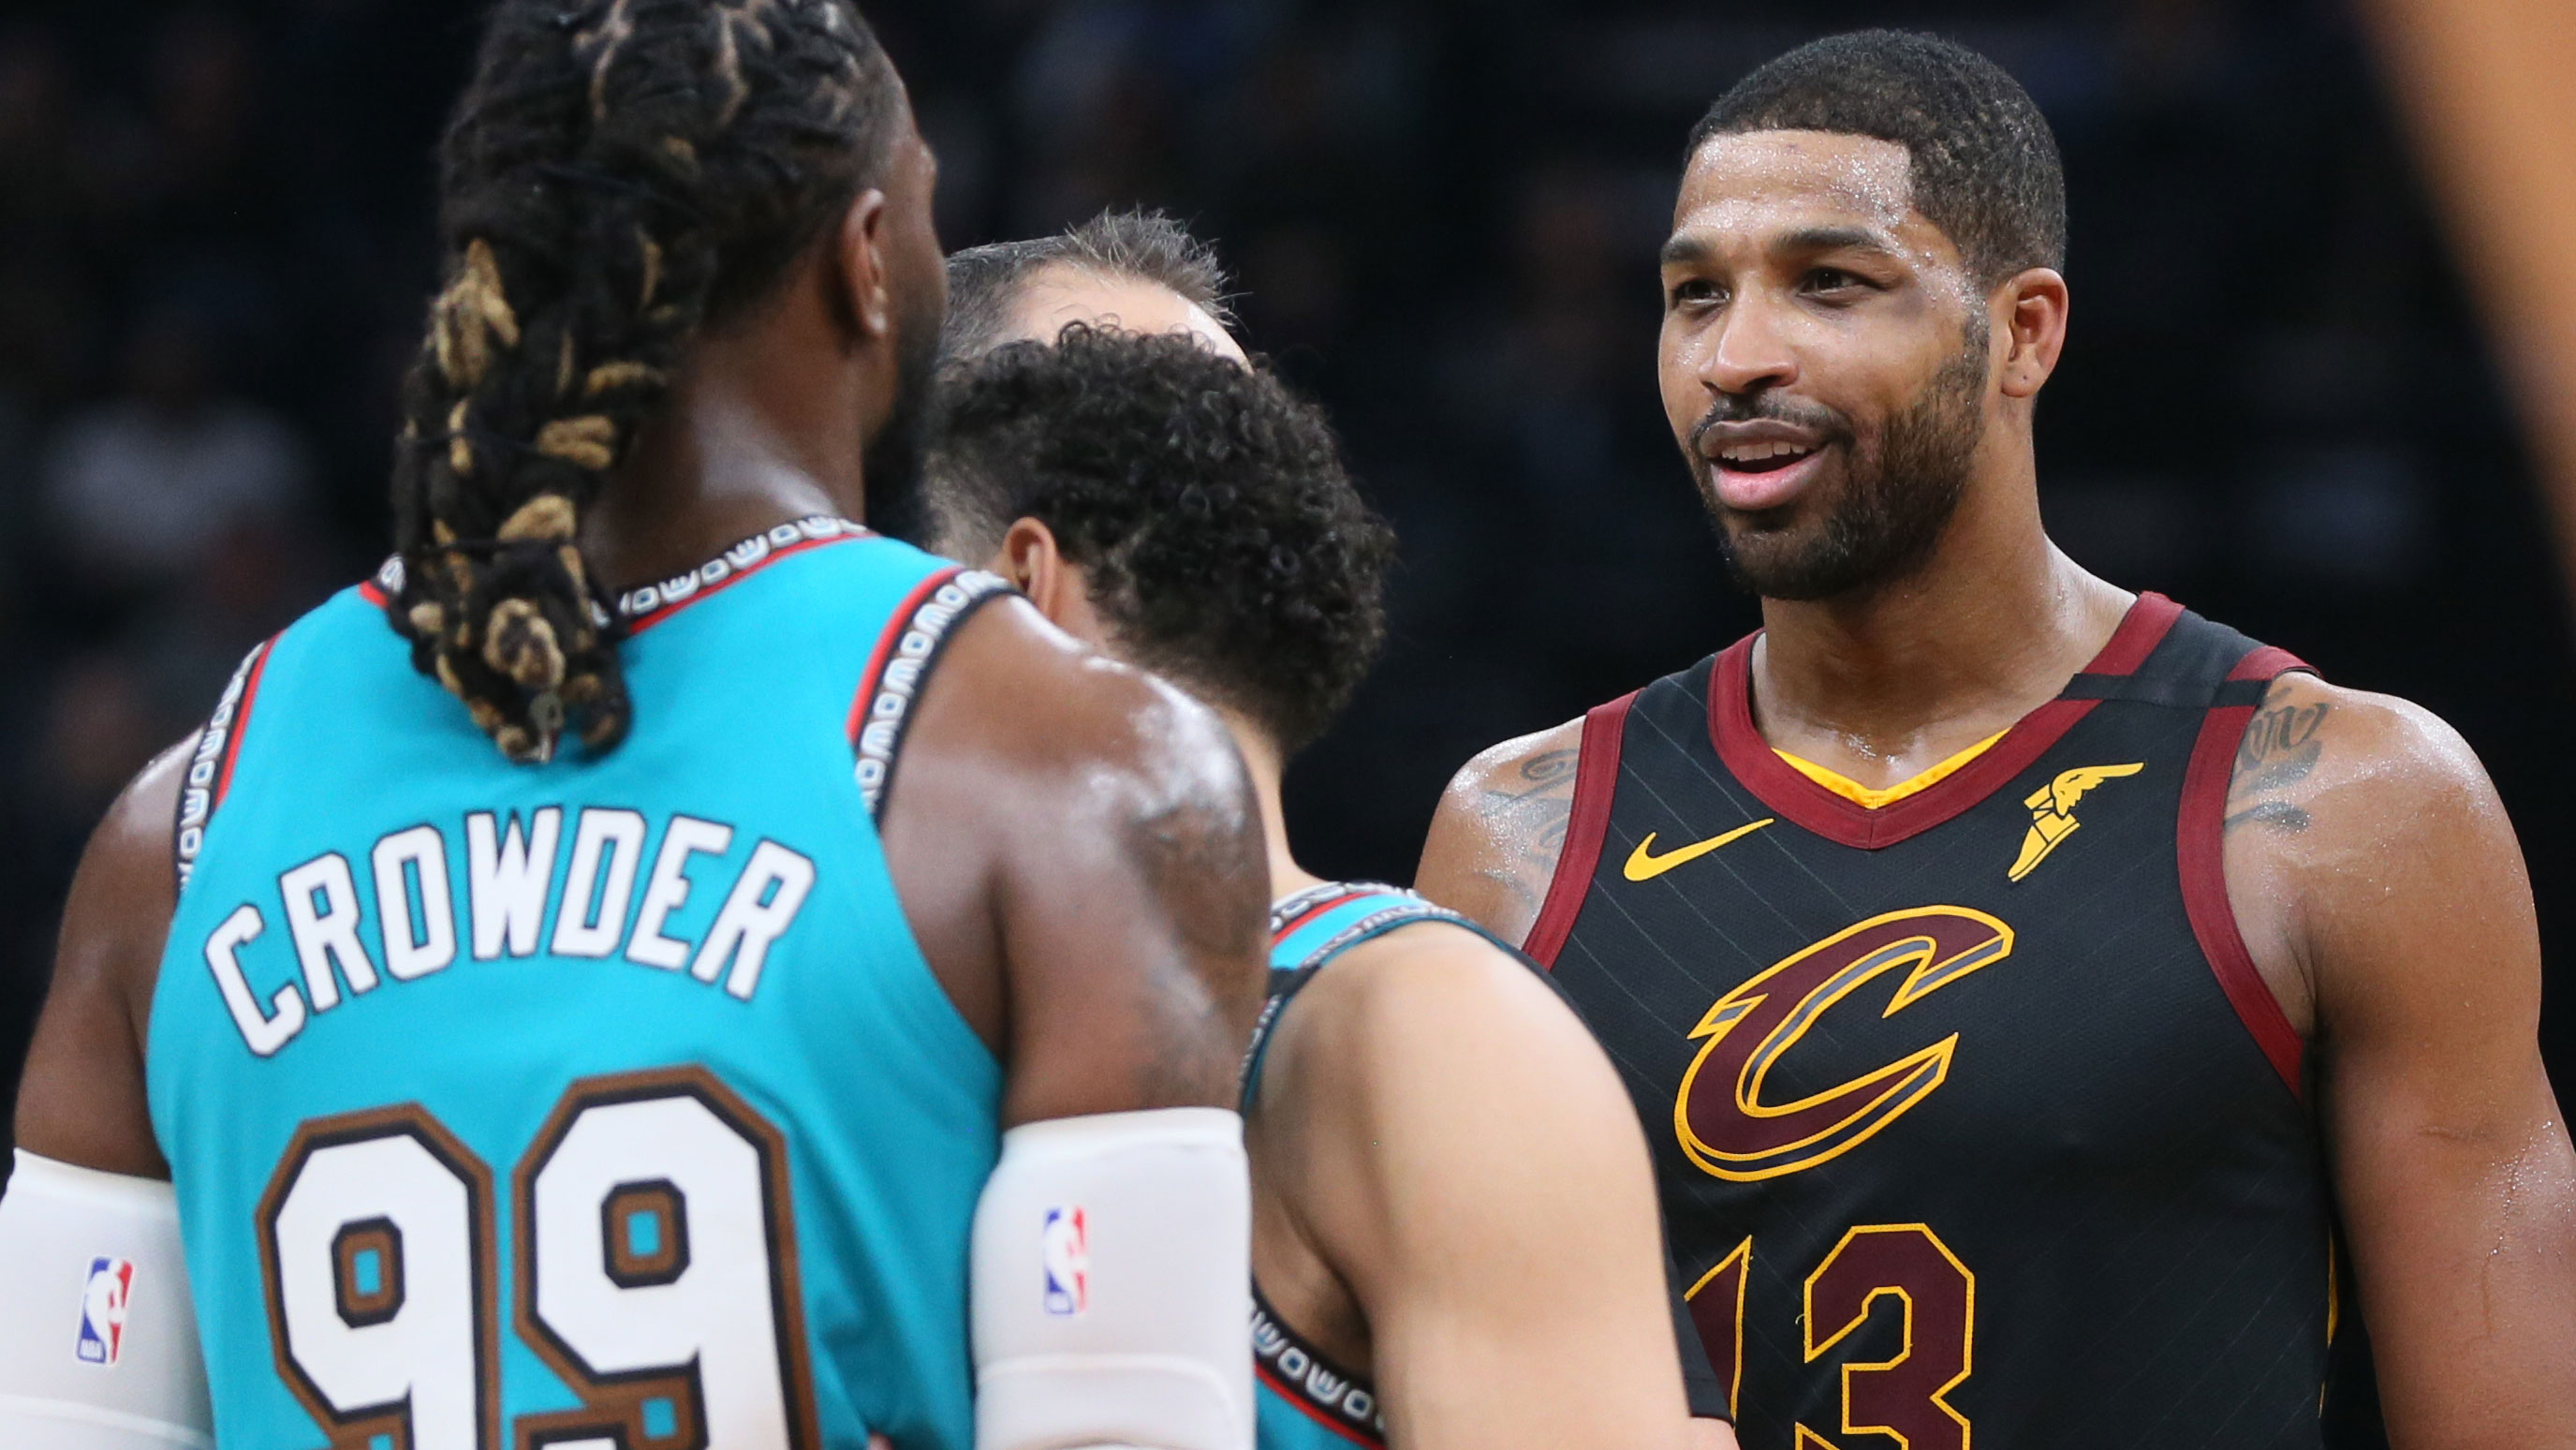 Tristan Thompson was ejected from a game for slapping an opponent's butt